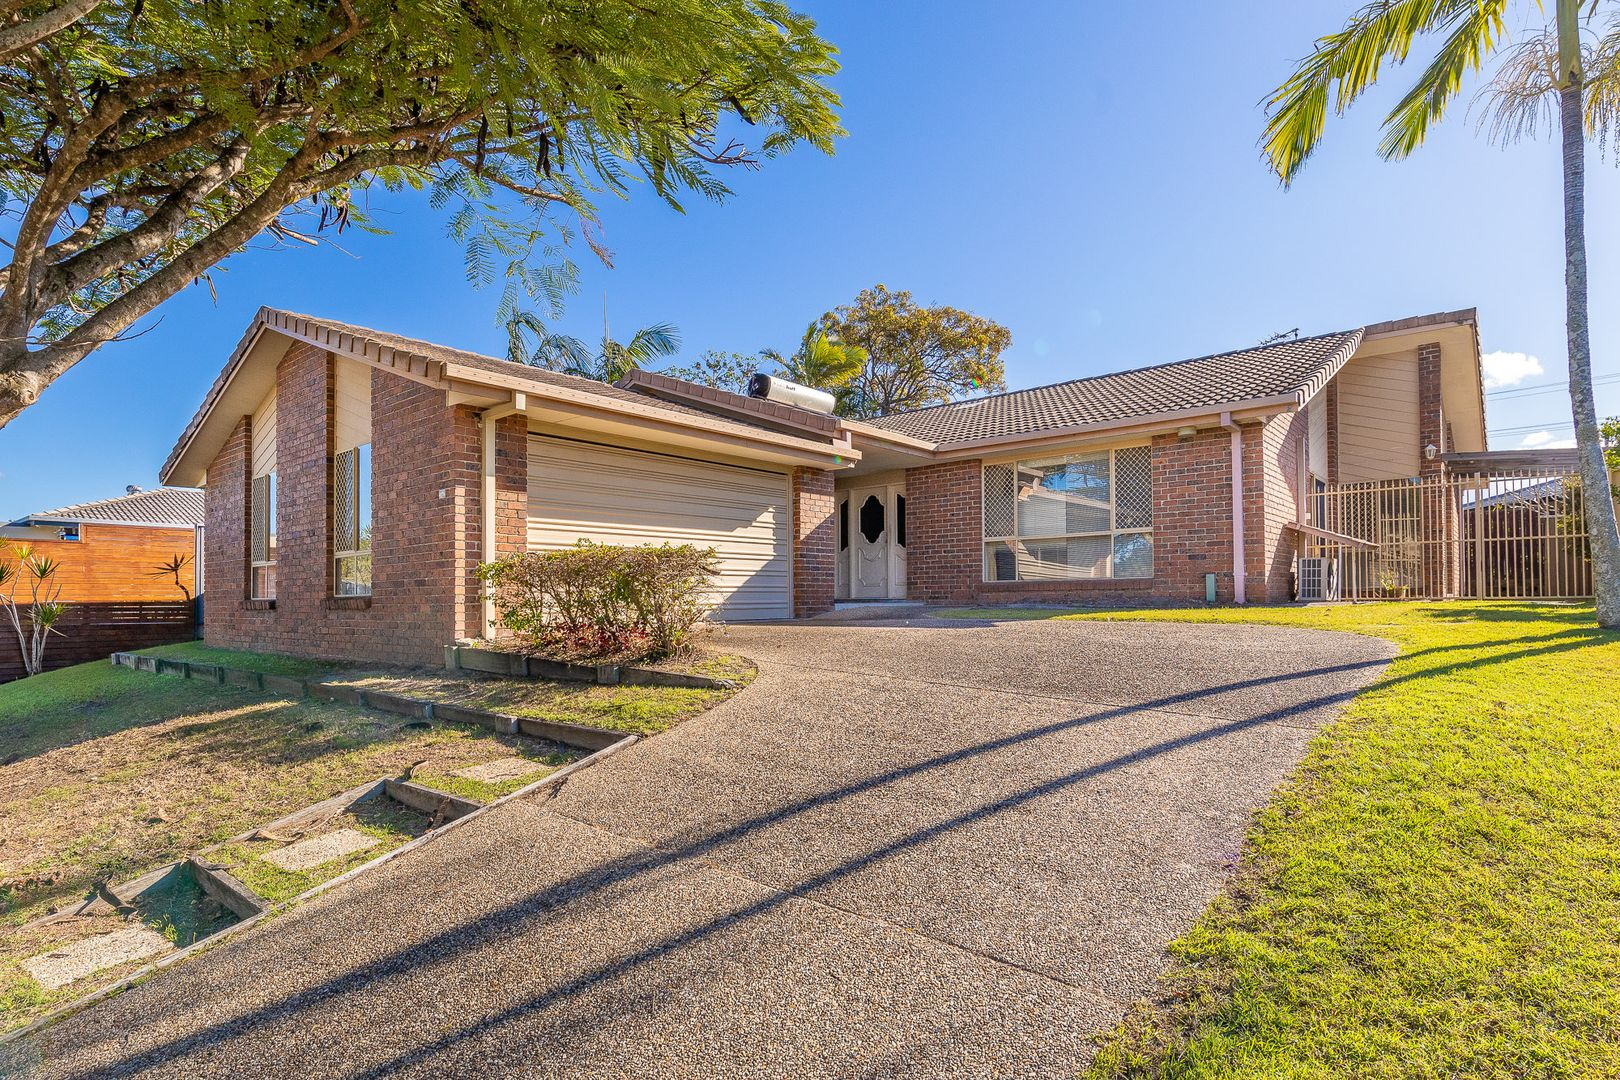 44 Camelot Crescent, Hollywell QLD 4216, Image 0